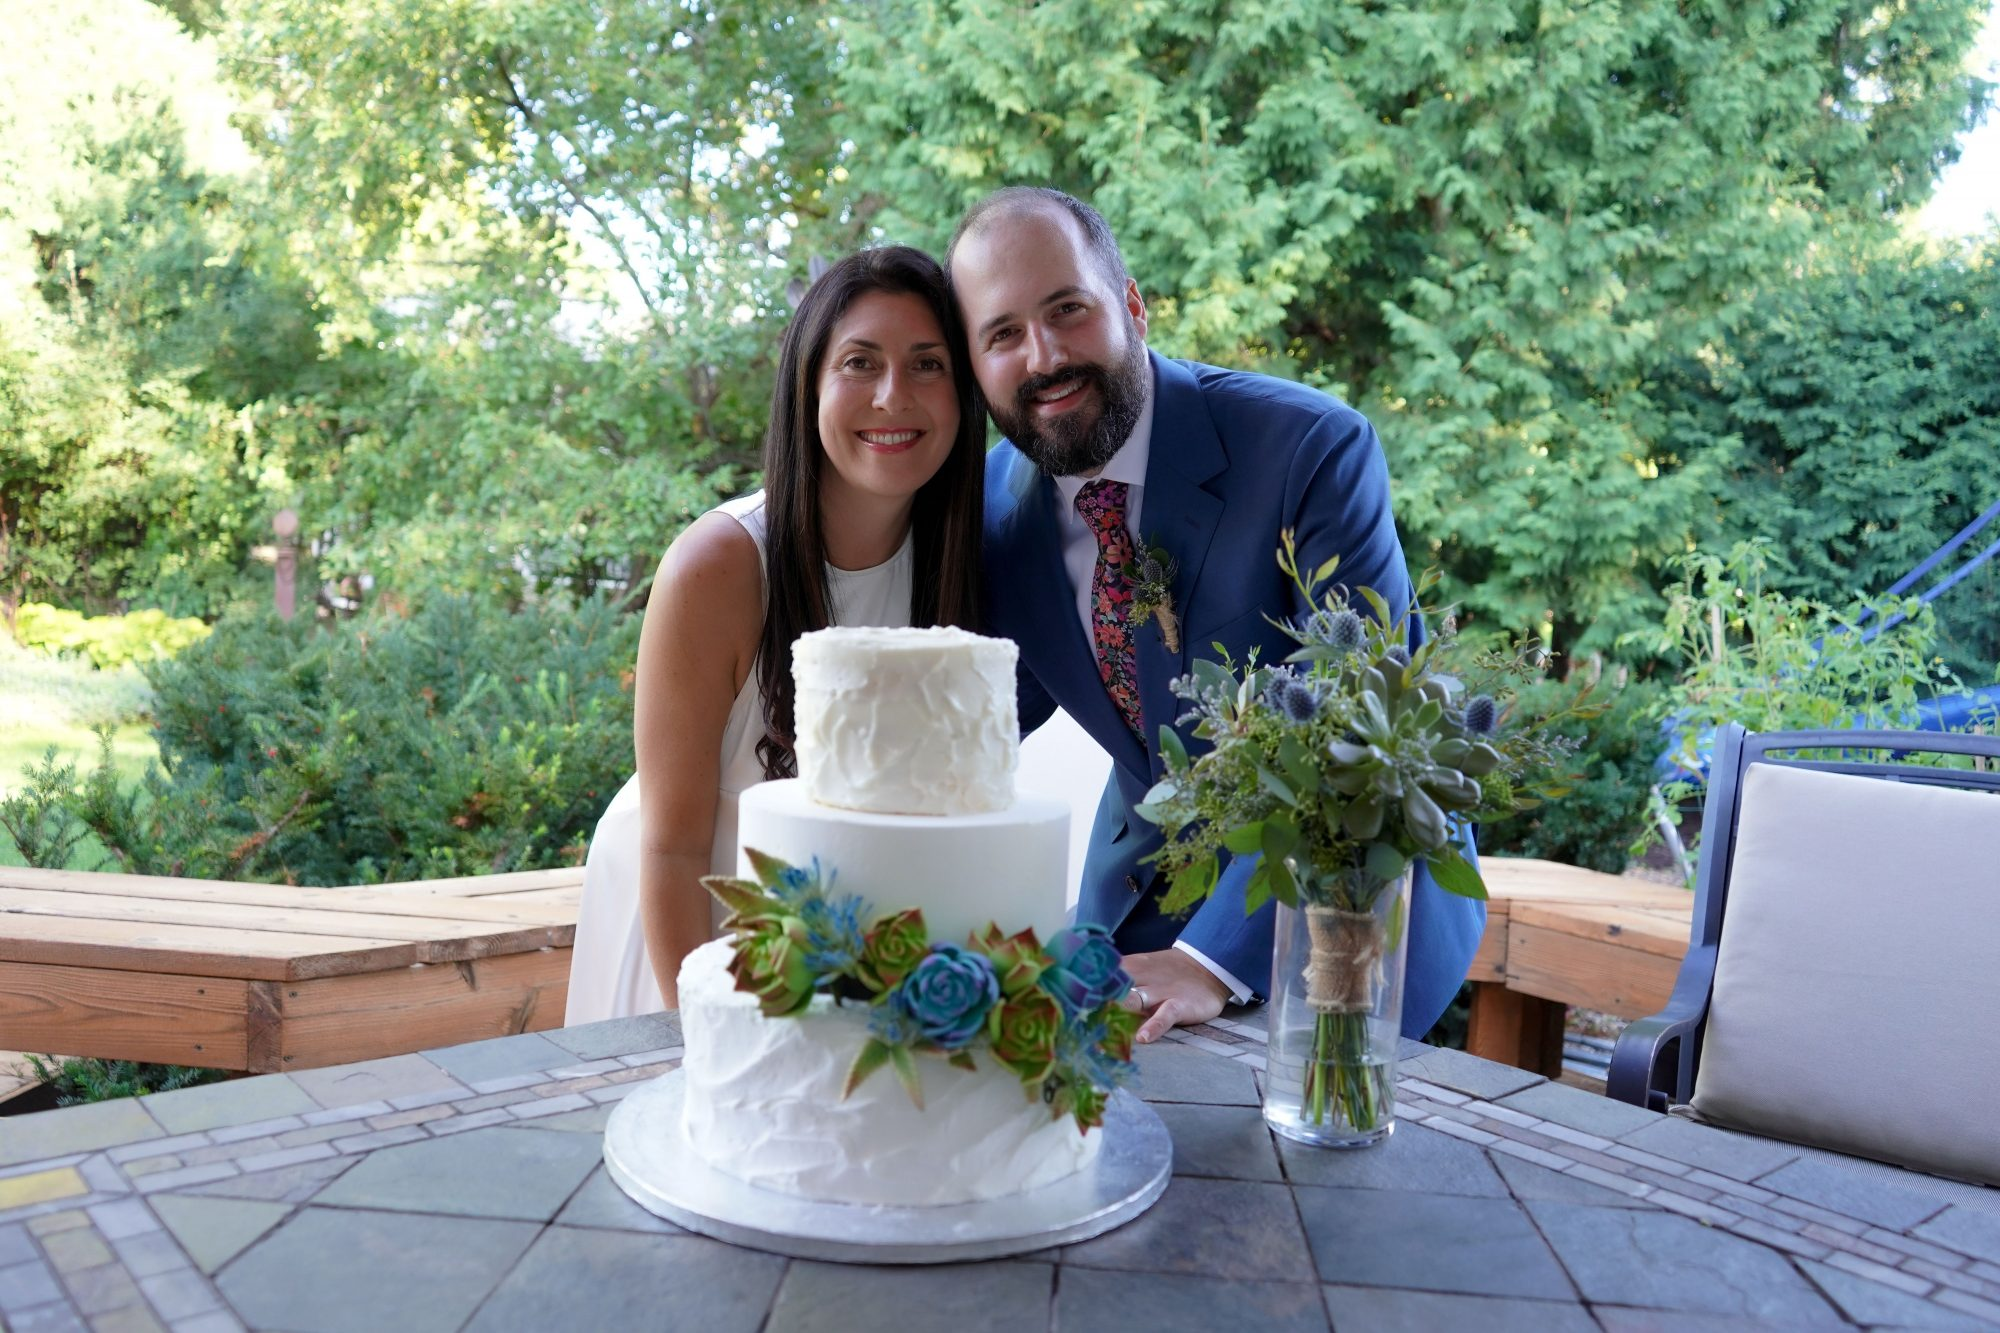 Erin and Ben Cohen and Publix Wedding Cake